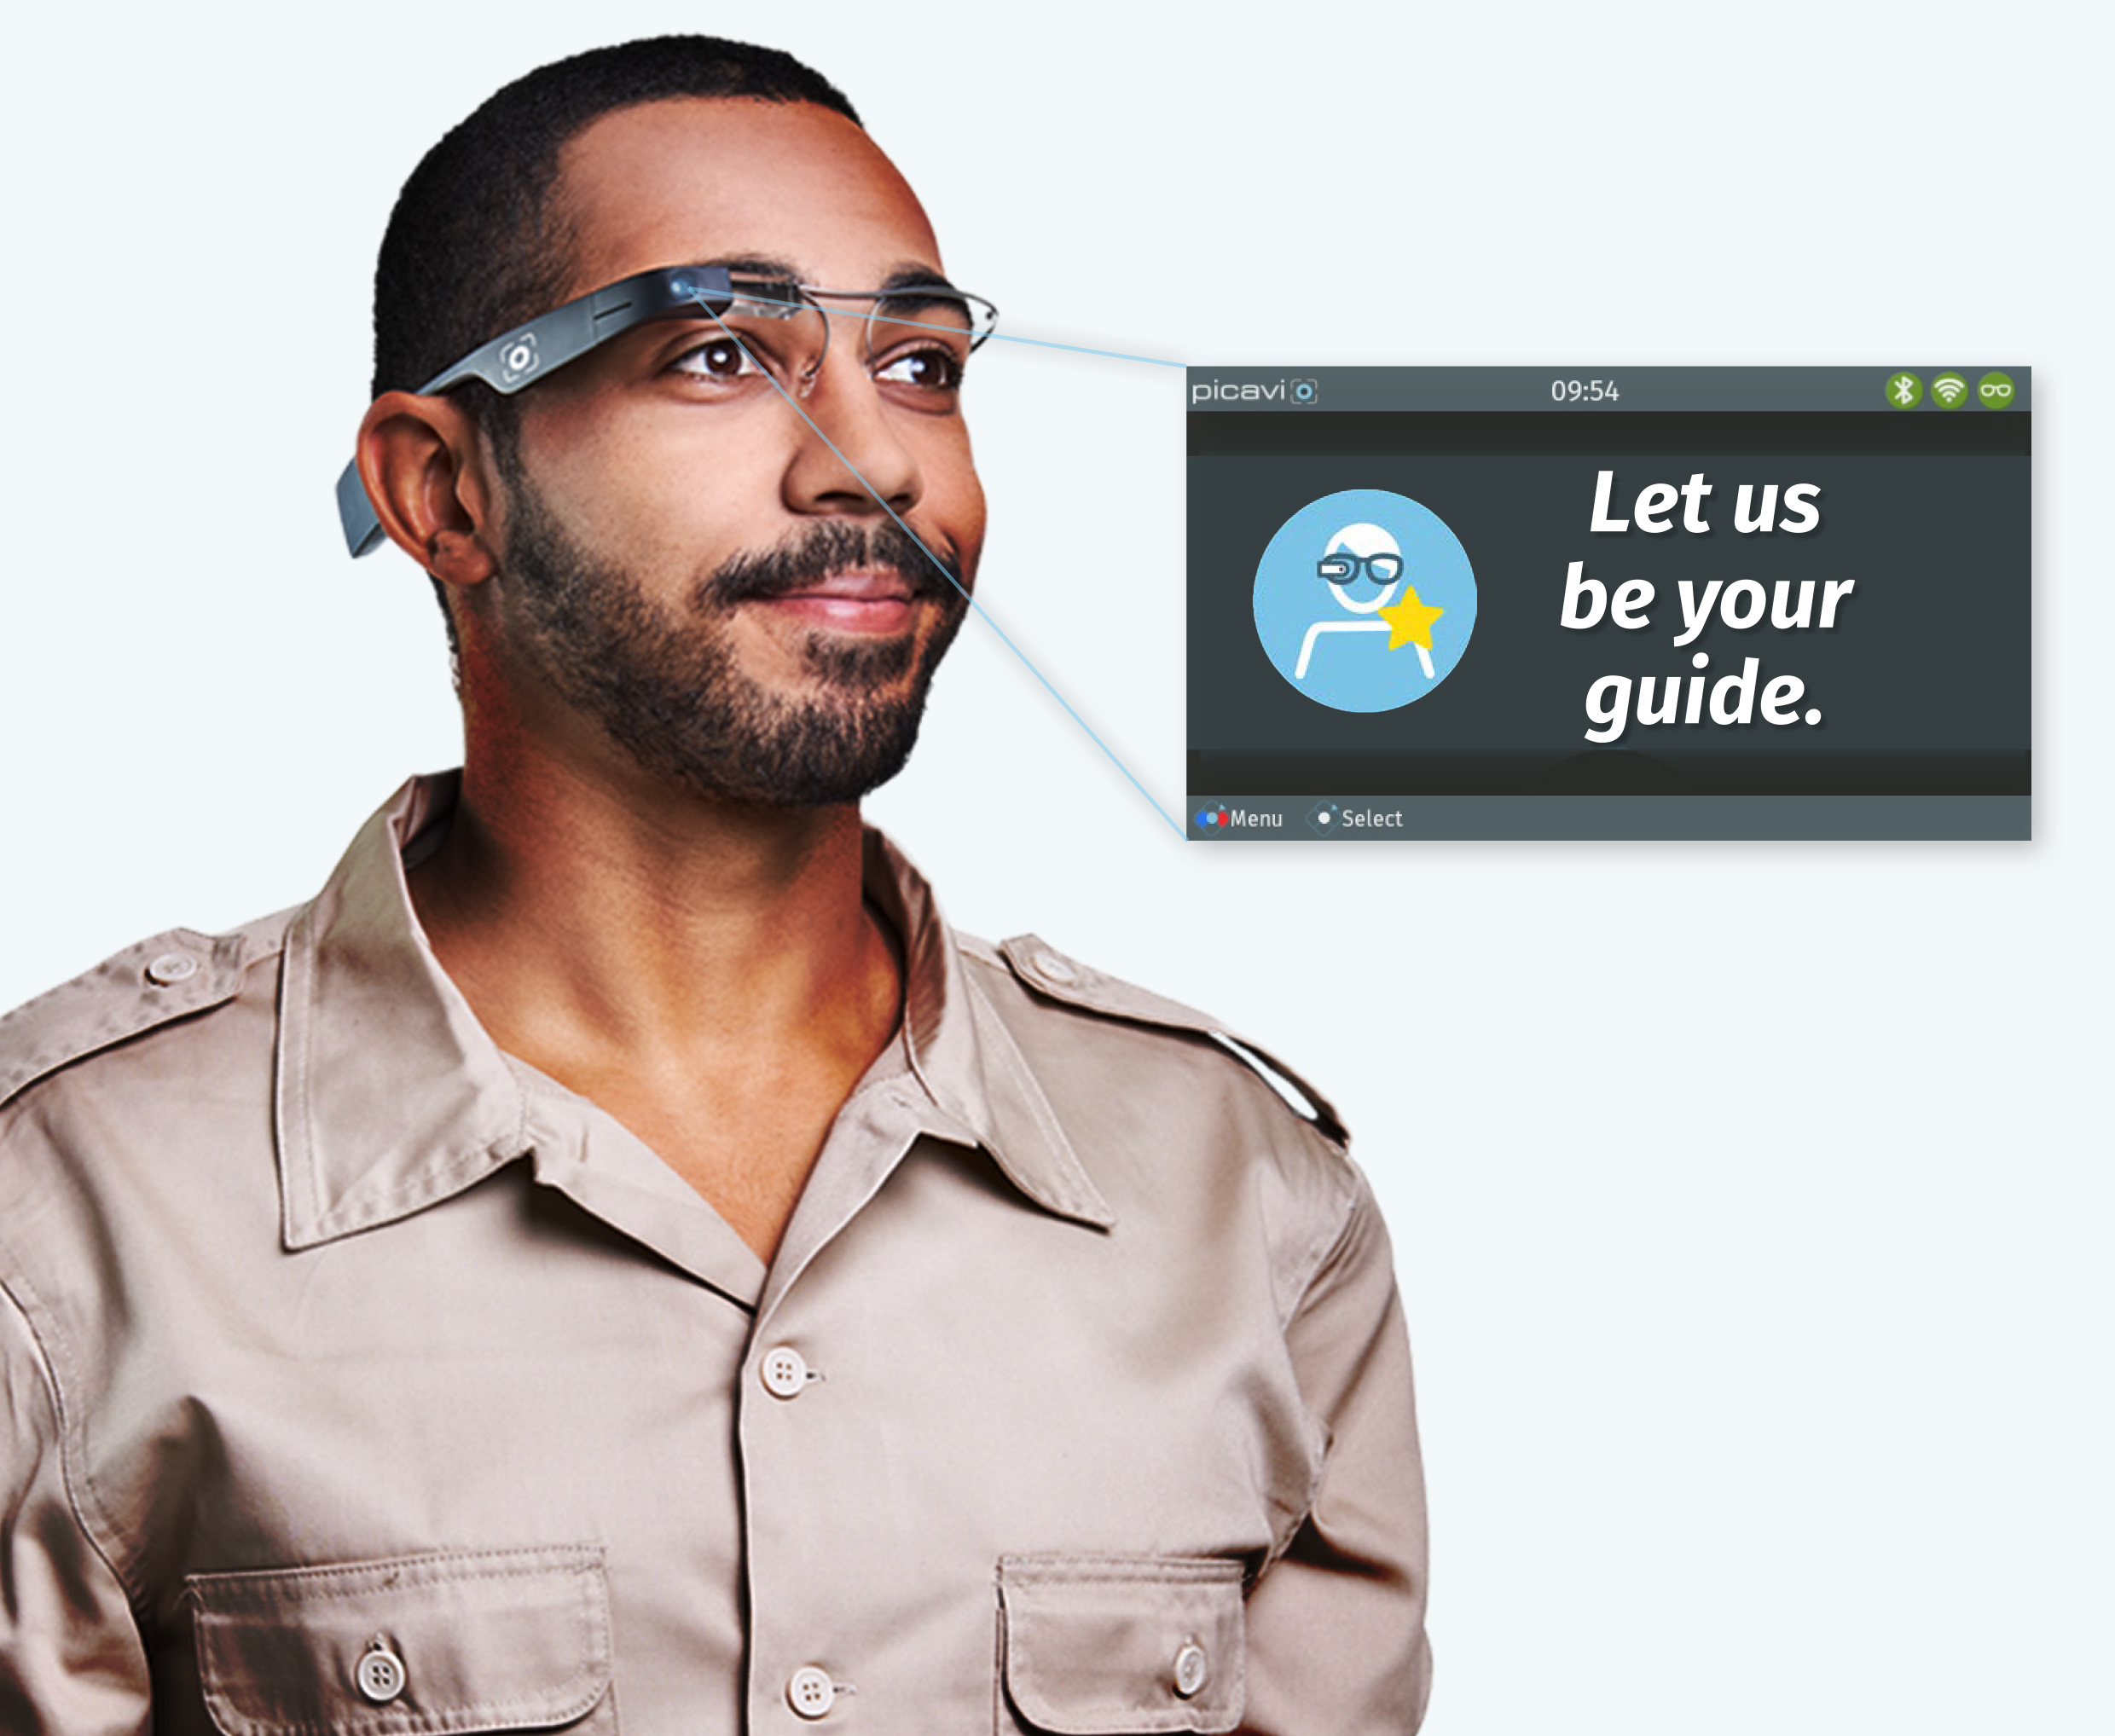 Person mit Datenbrille, Google Glass